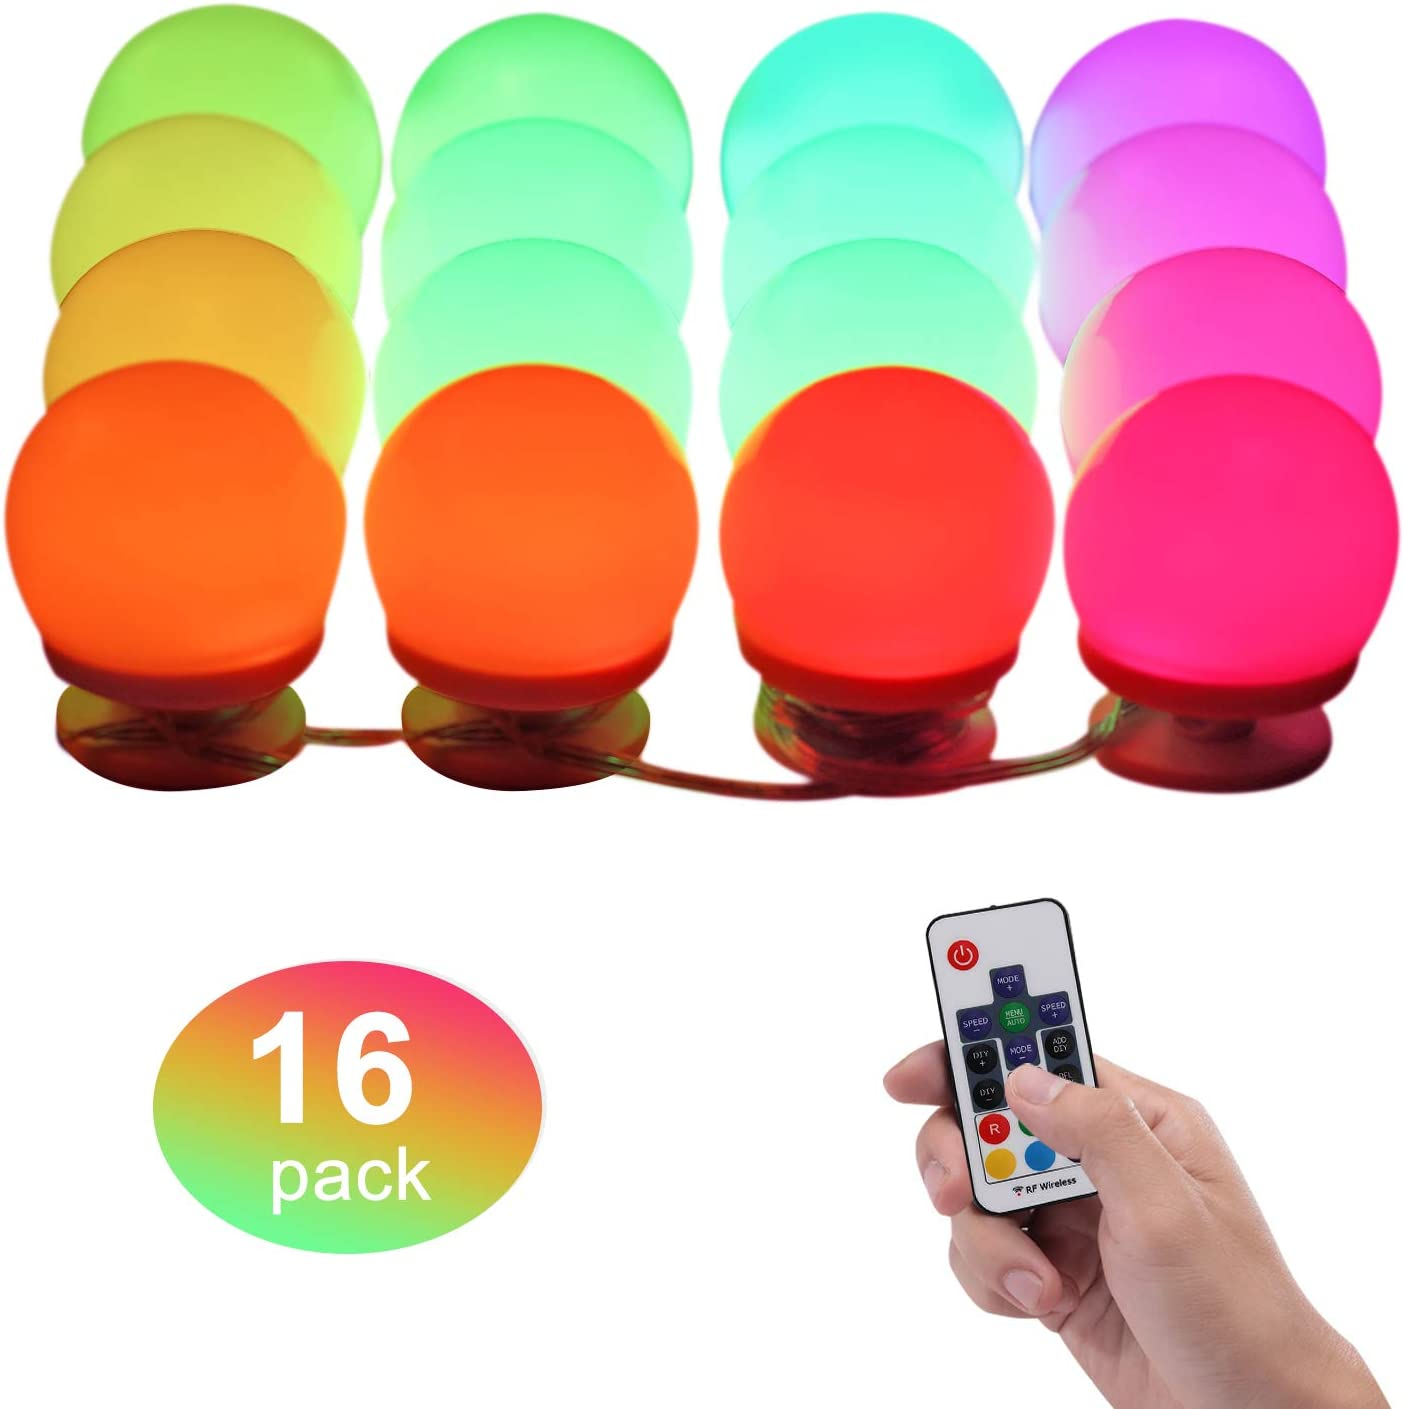 Dream Color LED Mood Light, Remote Controlled Rainbow Chasing Vanity Lights, Stick-on Color Changing Decorative RGBW Wall Lights for Party, Wedding, Birthday, Makeup Mirror (16 Pack, RGBW Dream Color)